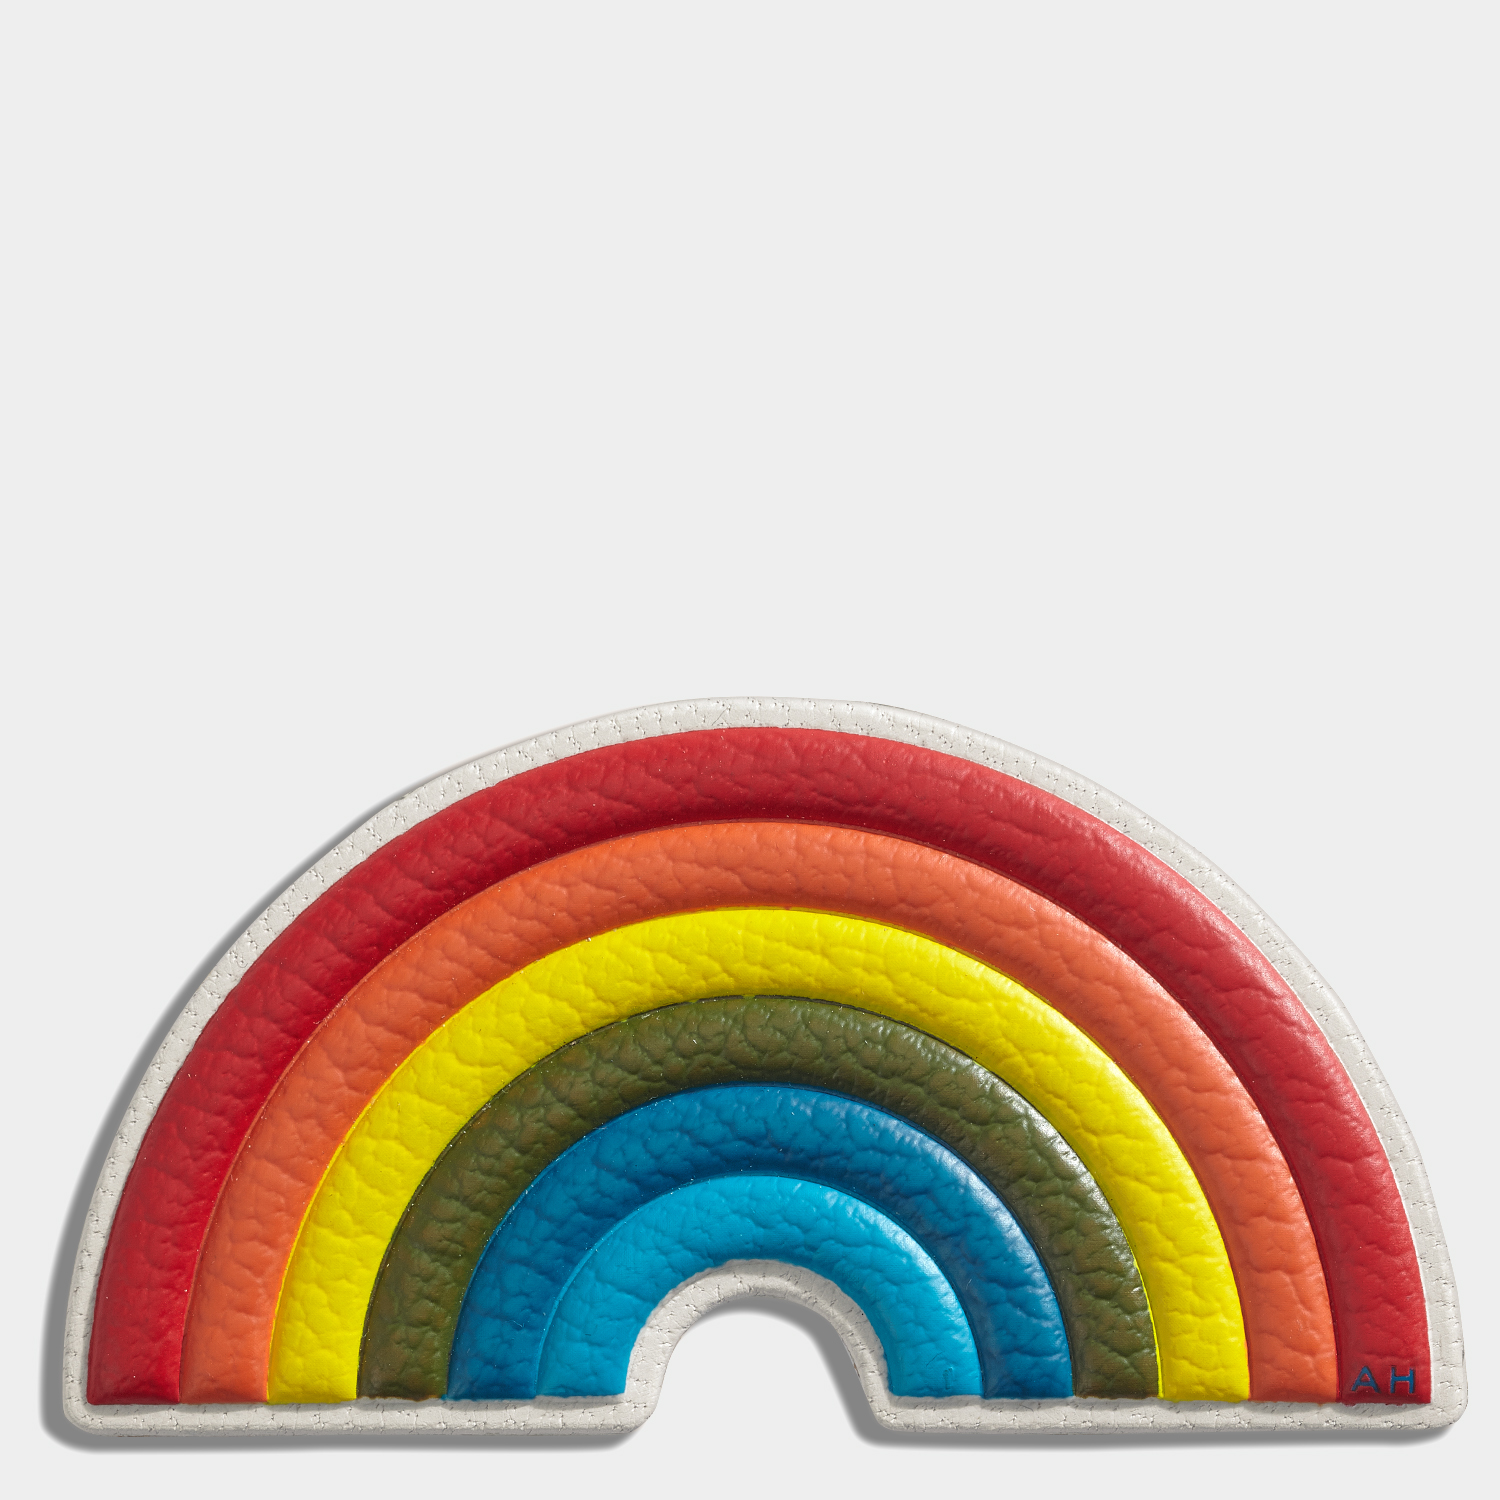 Stickers-Rainbow-in-Chalk-Capra-1.jpg